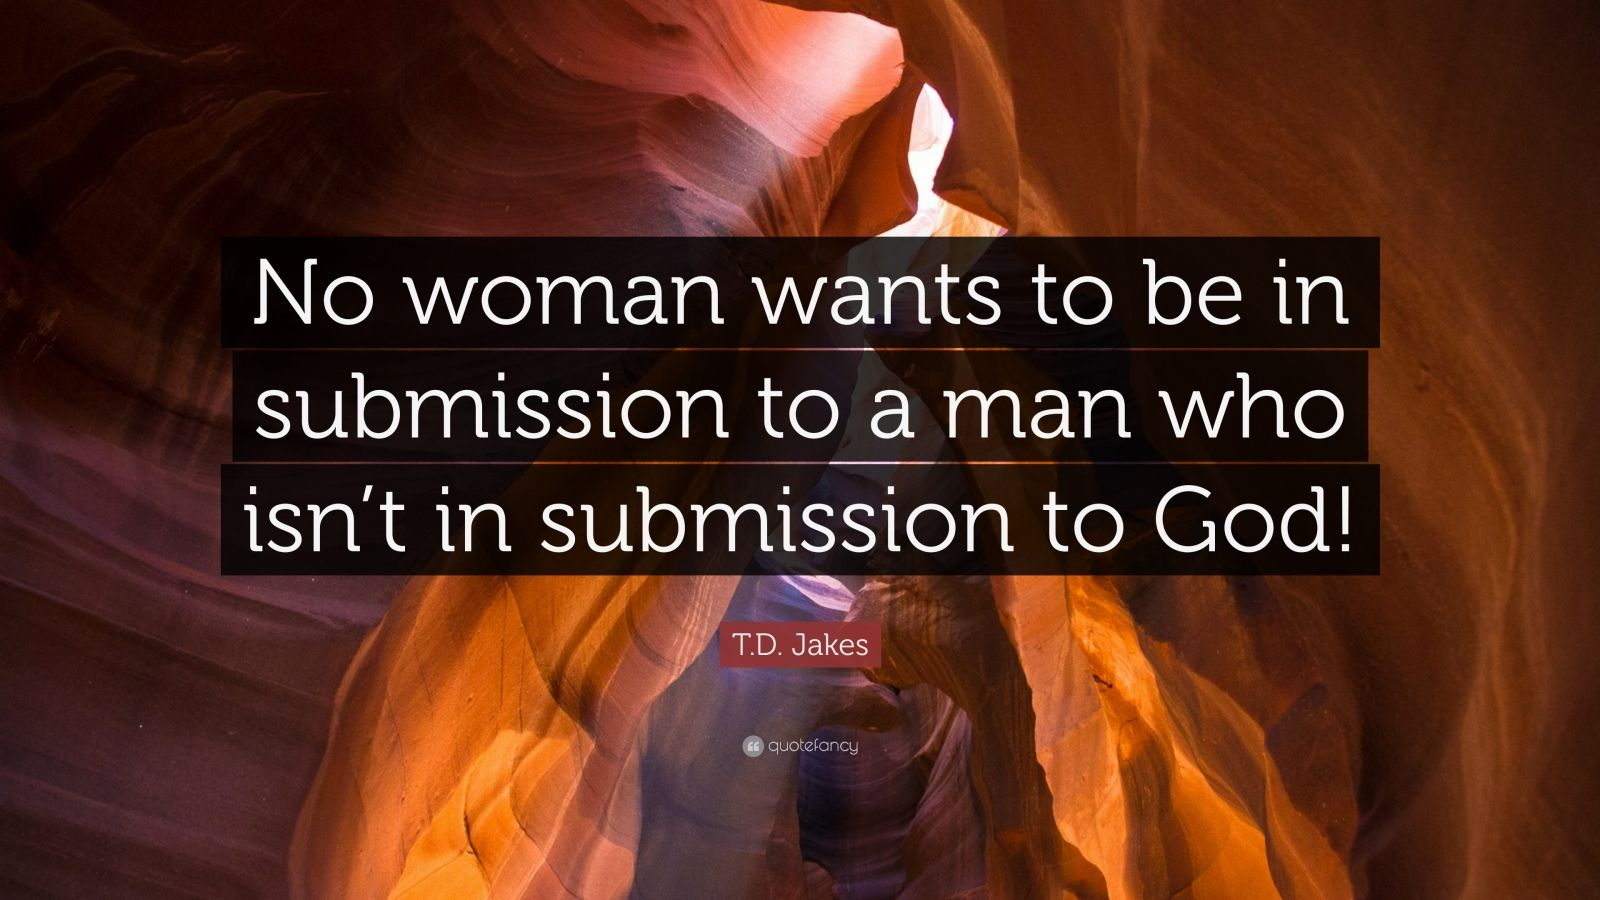 """T.D. Jakes Quote: """"No woman wants to be in submission to a man who isn't in submission to God!"""""""